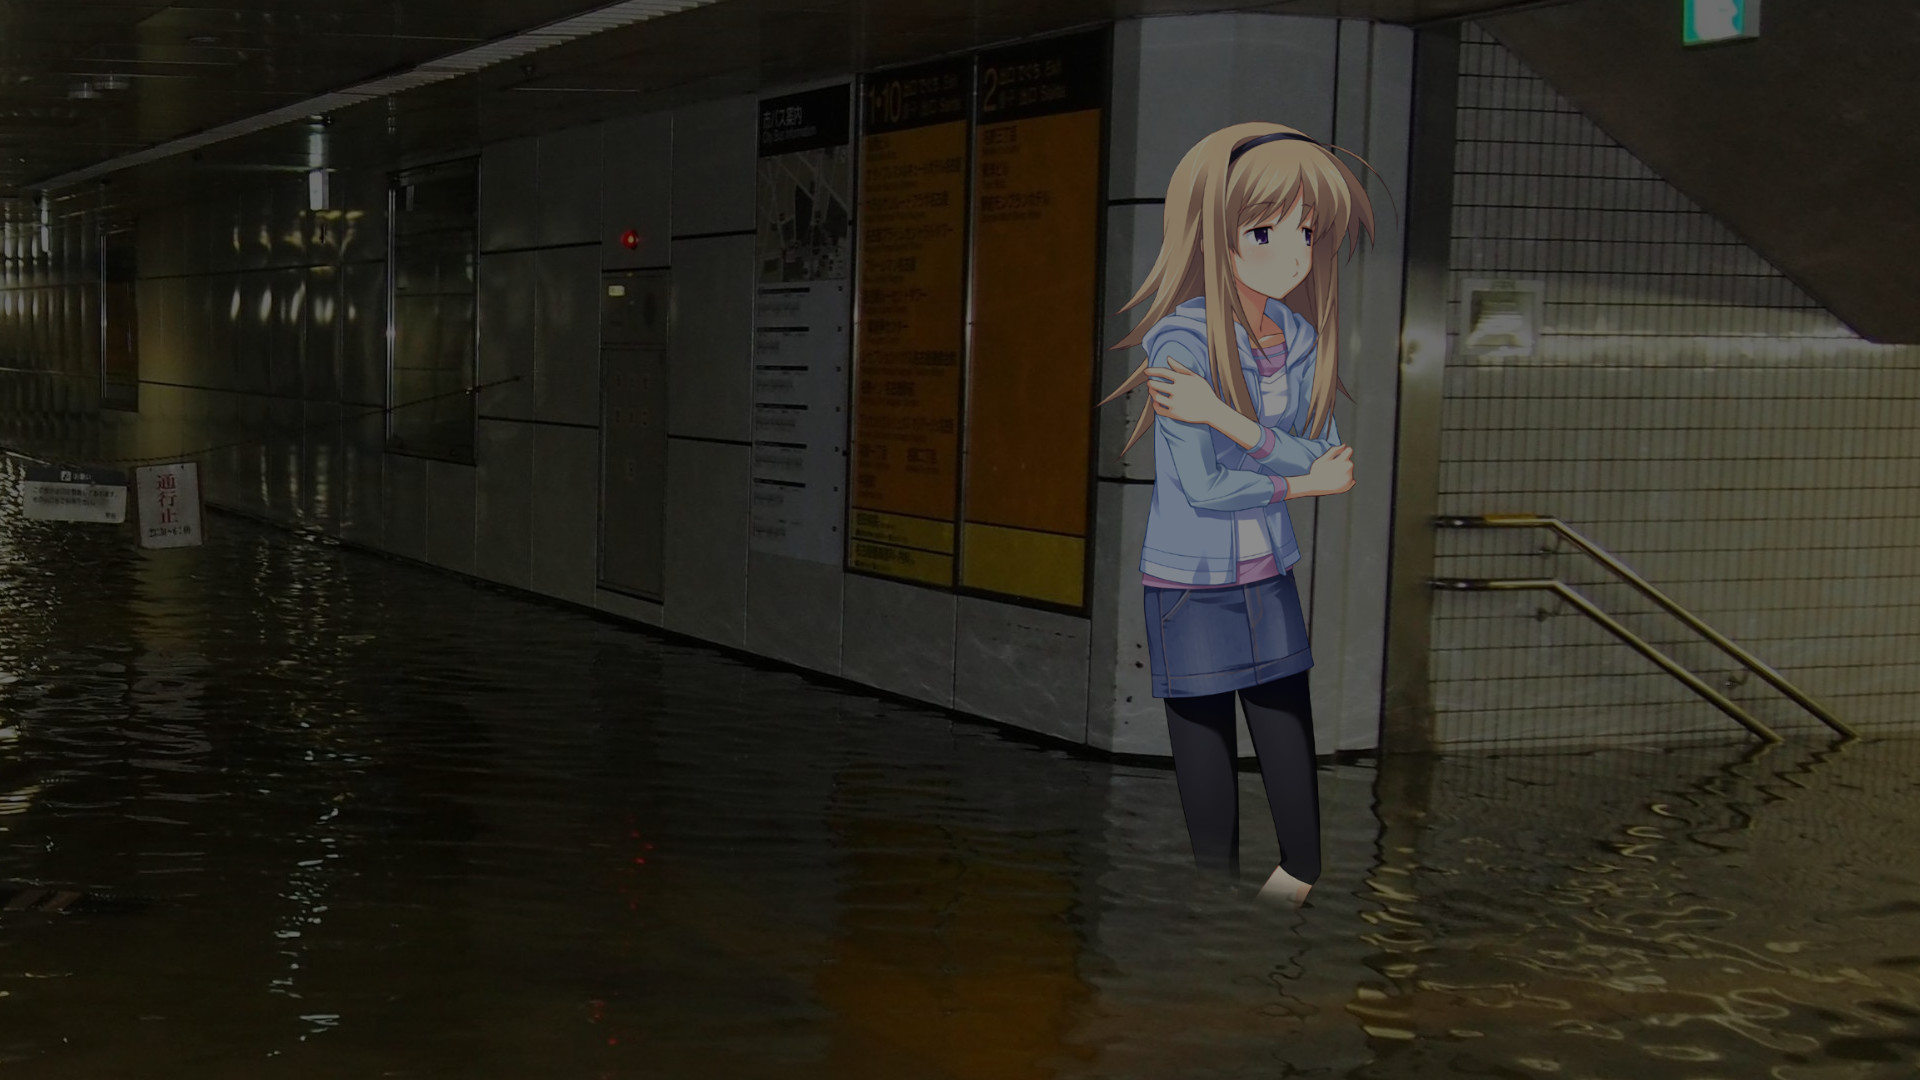 Res: 1920x1080, water-station-[CHAOS;HEAD ]-Nishijou-Nanami-1920×1080-Need-iPhone-S-Plus-Backgr-wallpaper-wp3801661